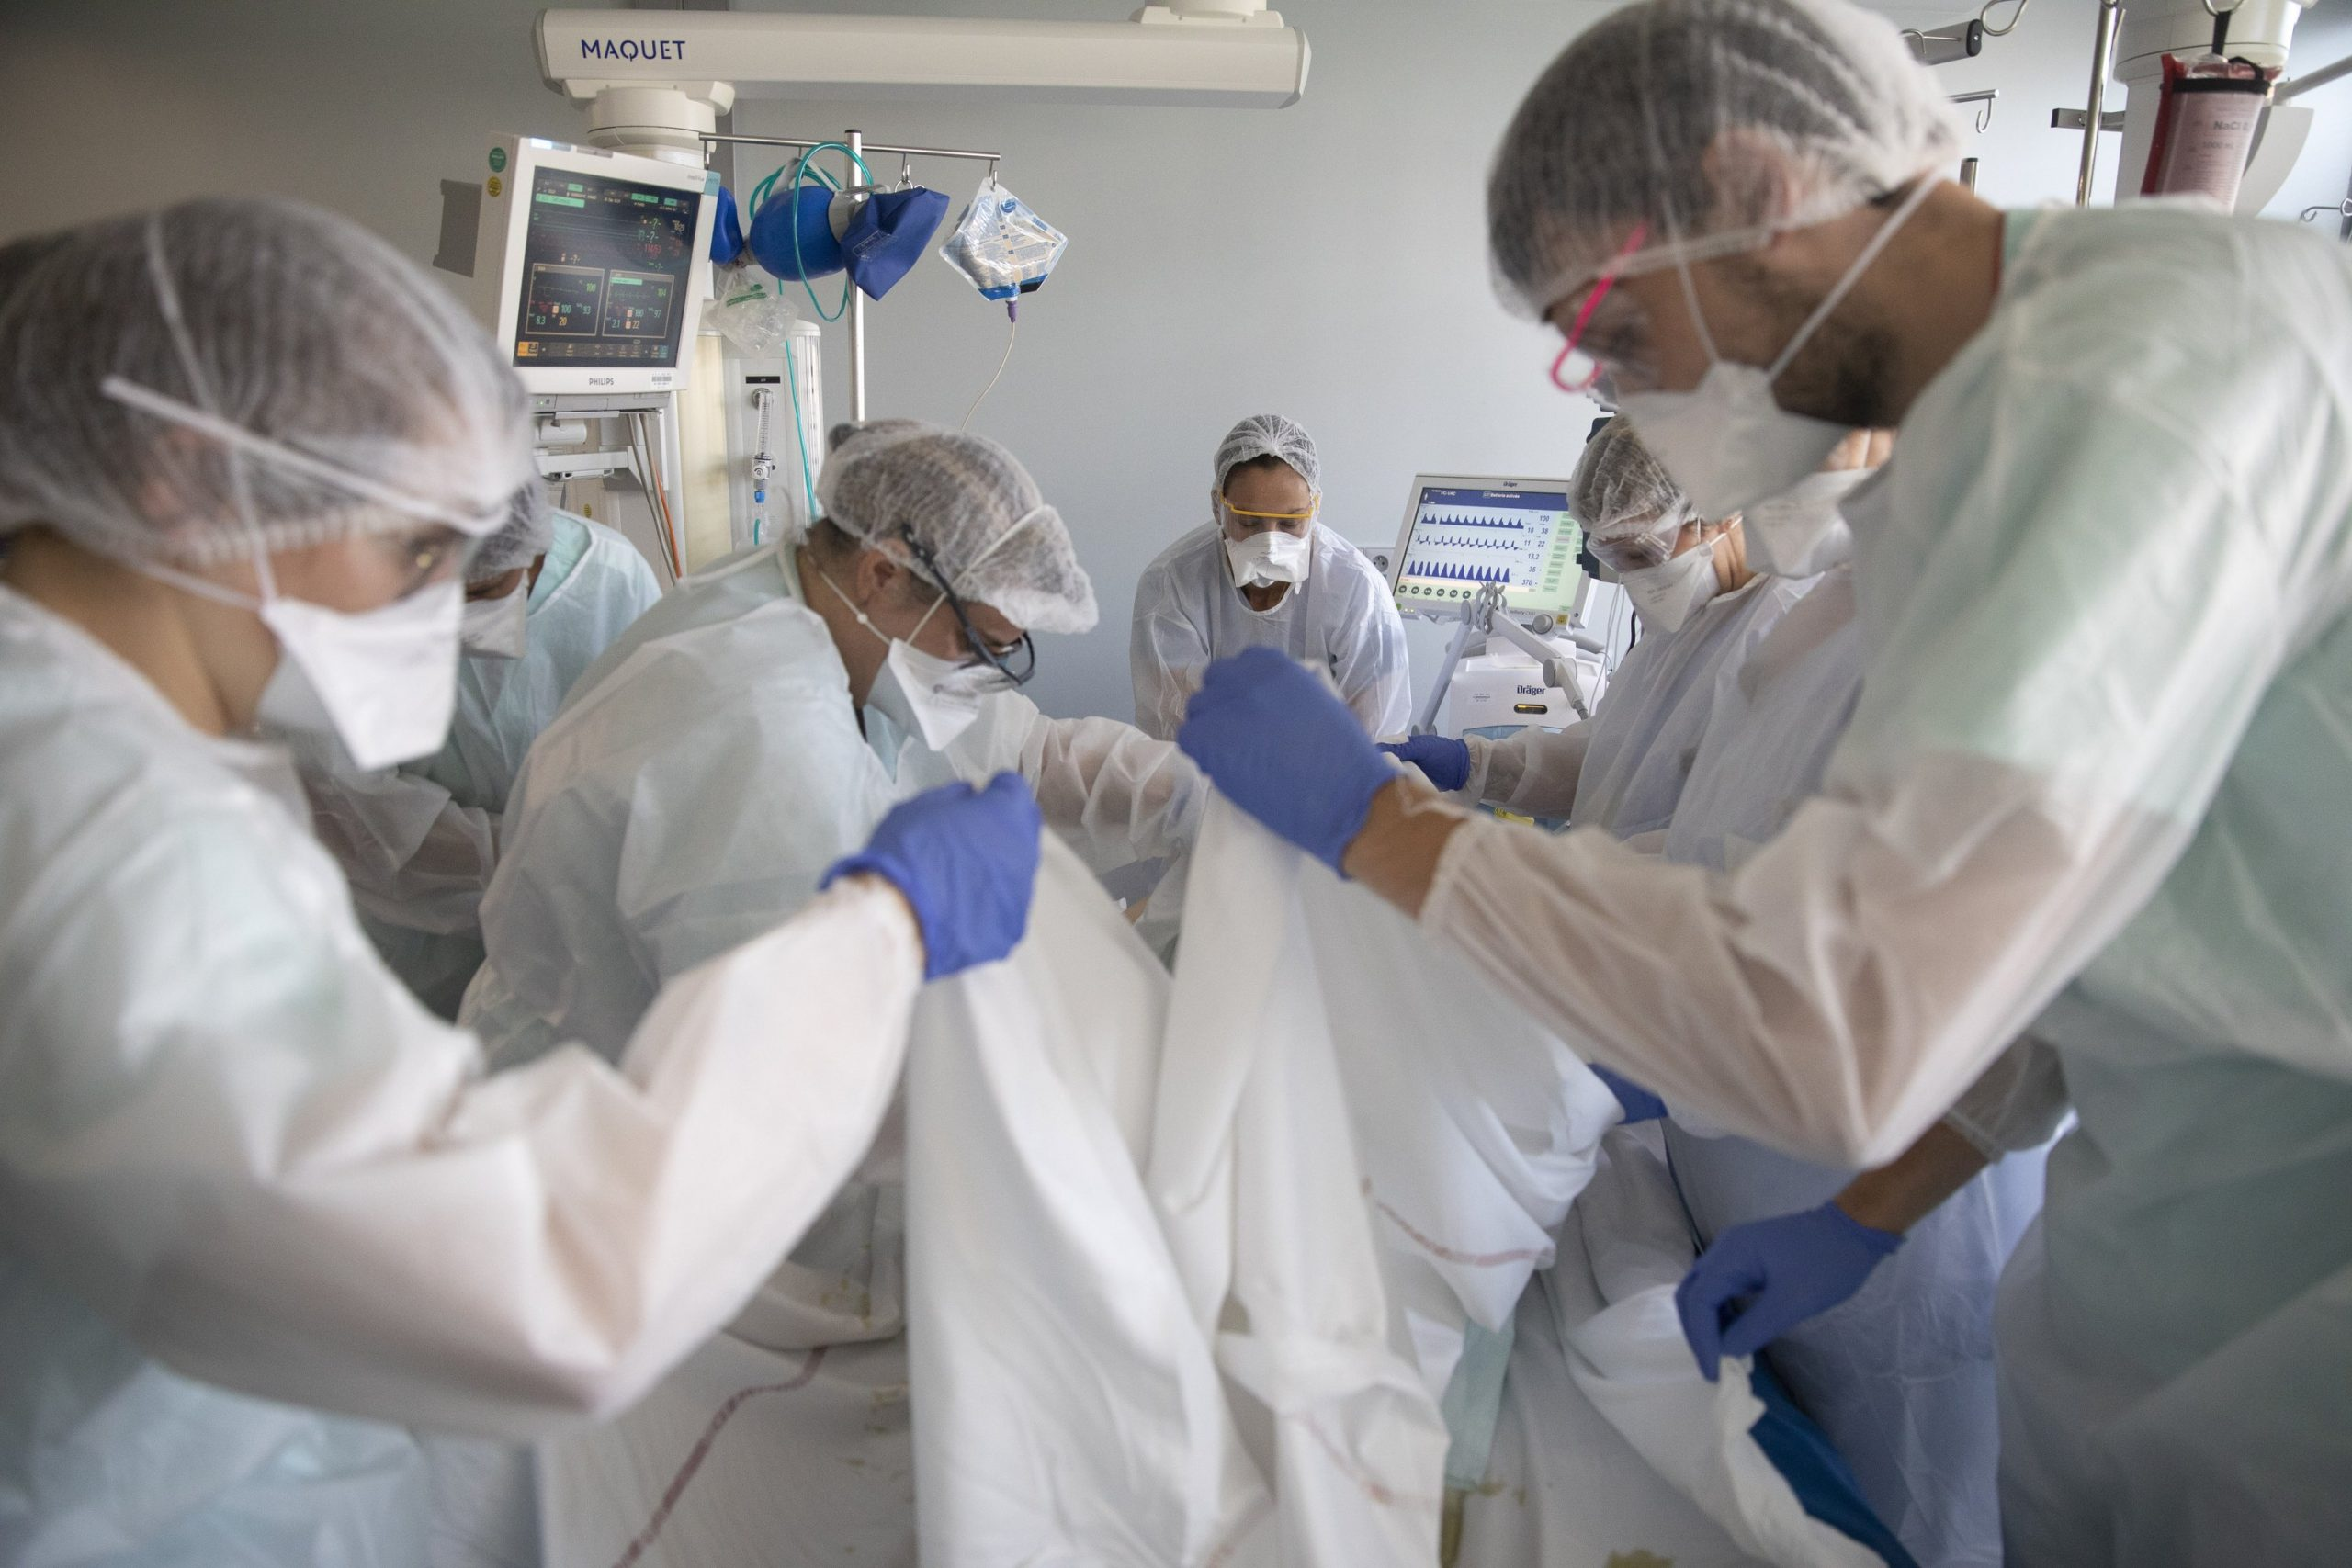 As the virus is filling French intensive care units again, doctors are asking what went wrong